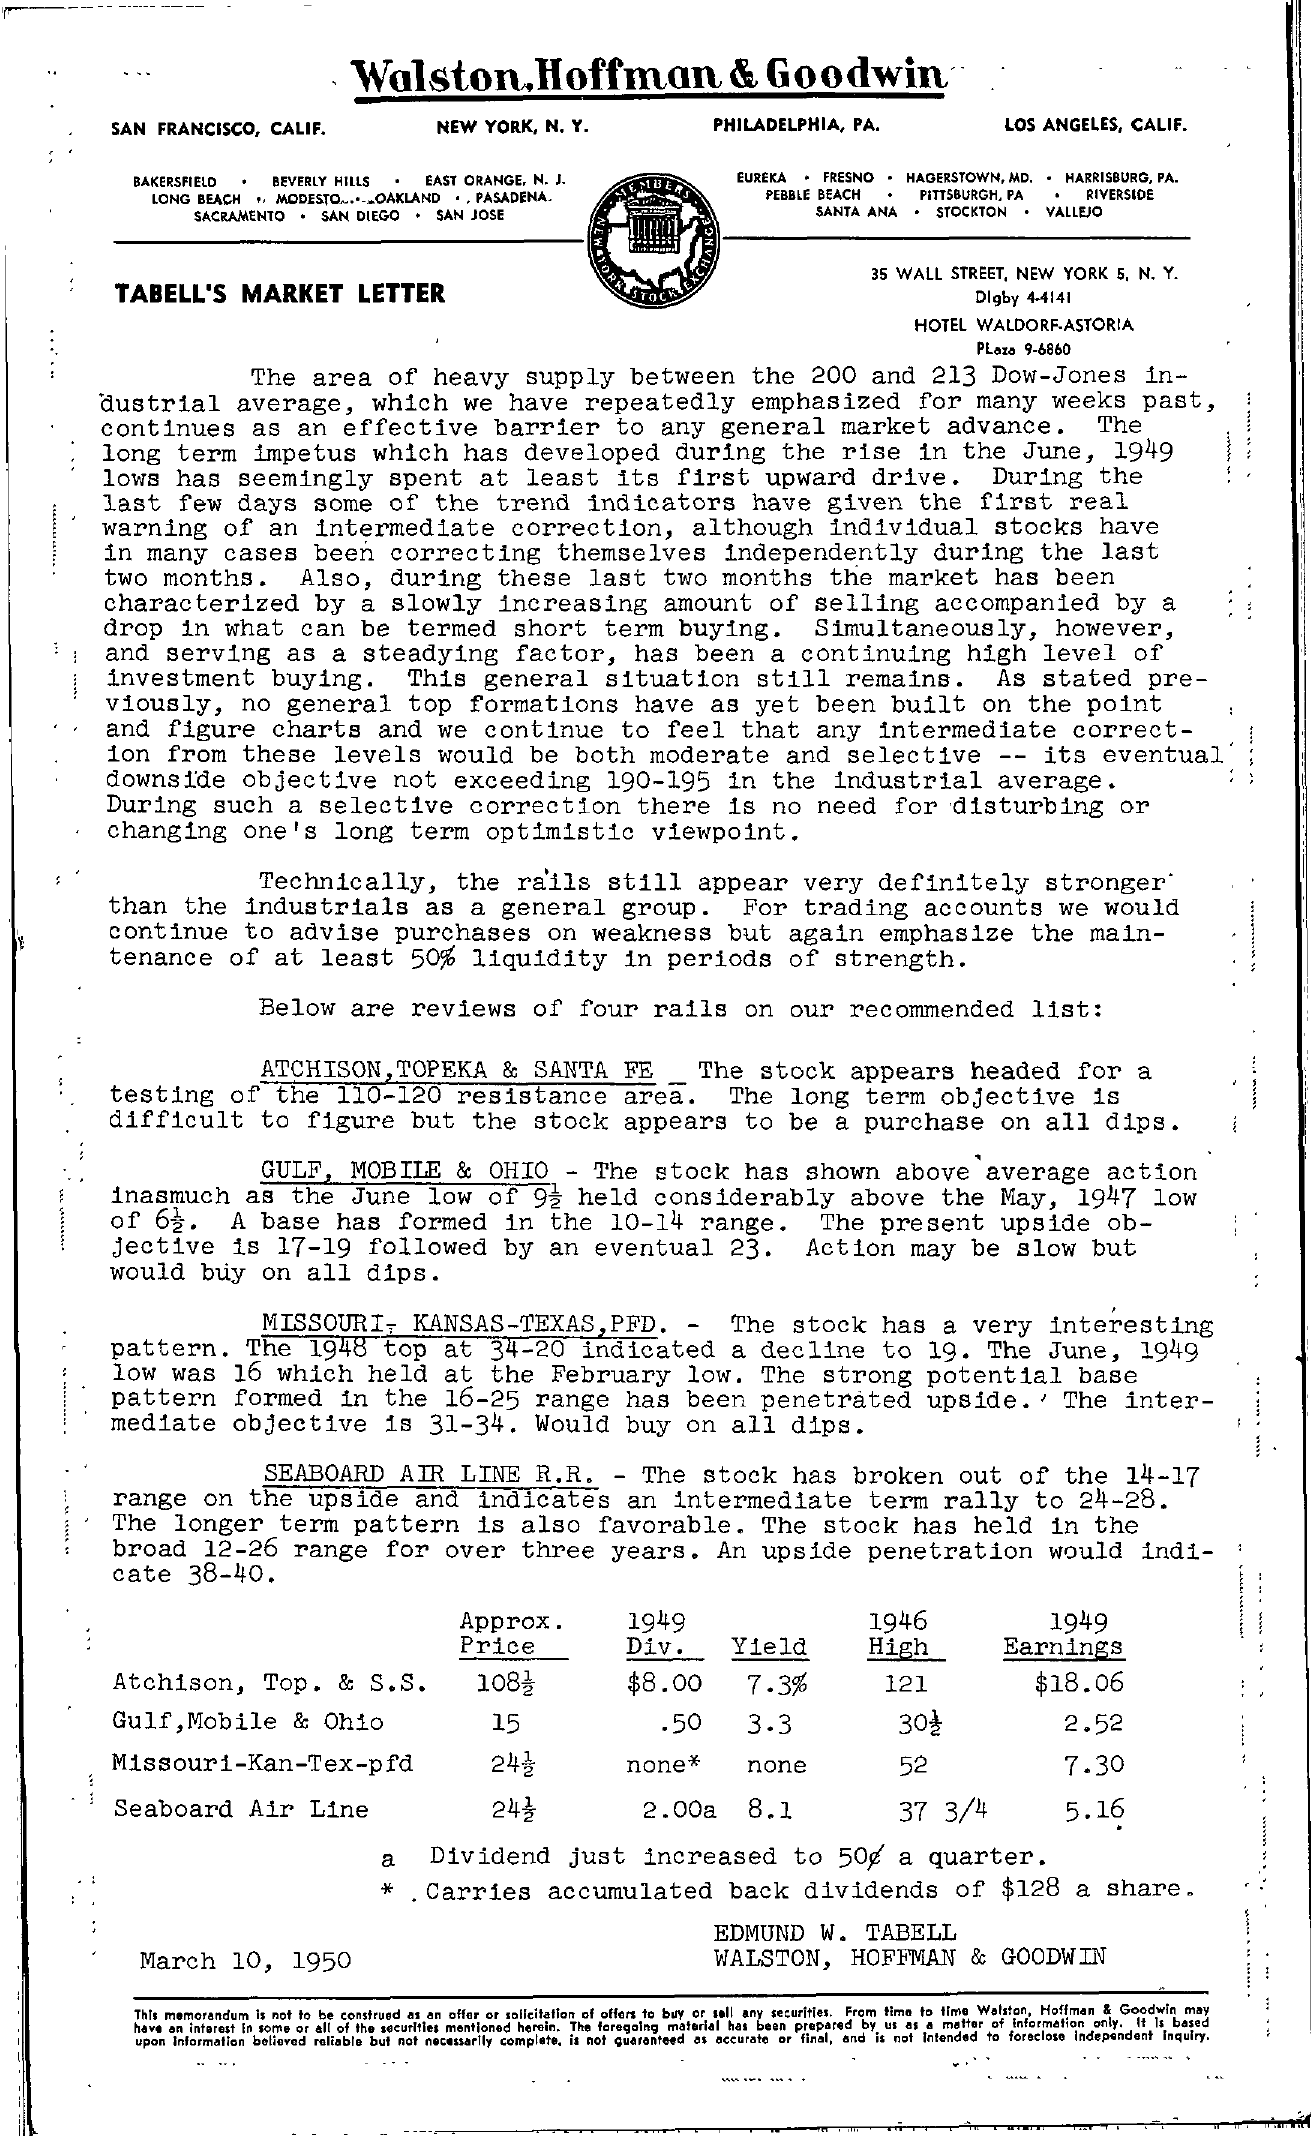 Tabell's Market Letter - March 10, 1950